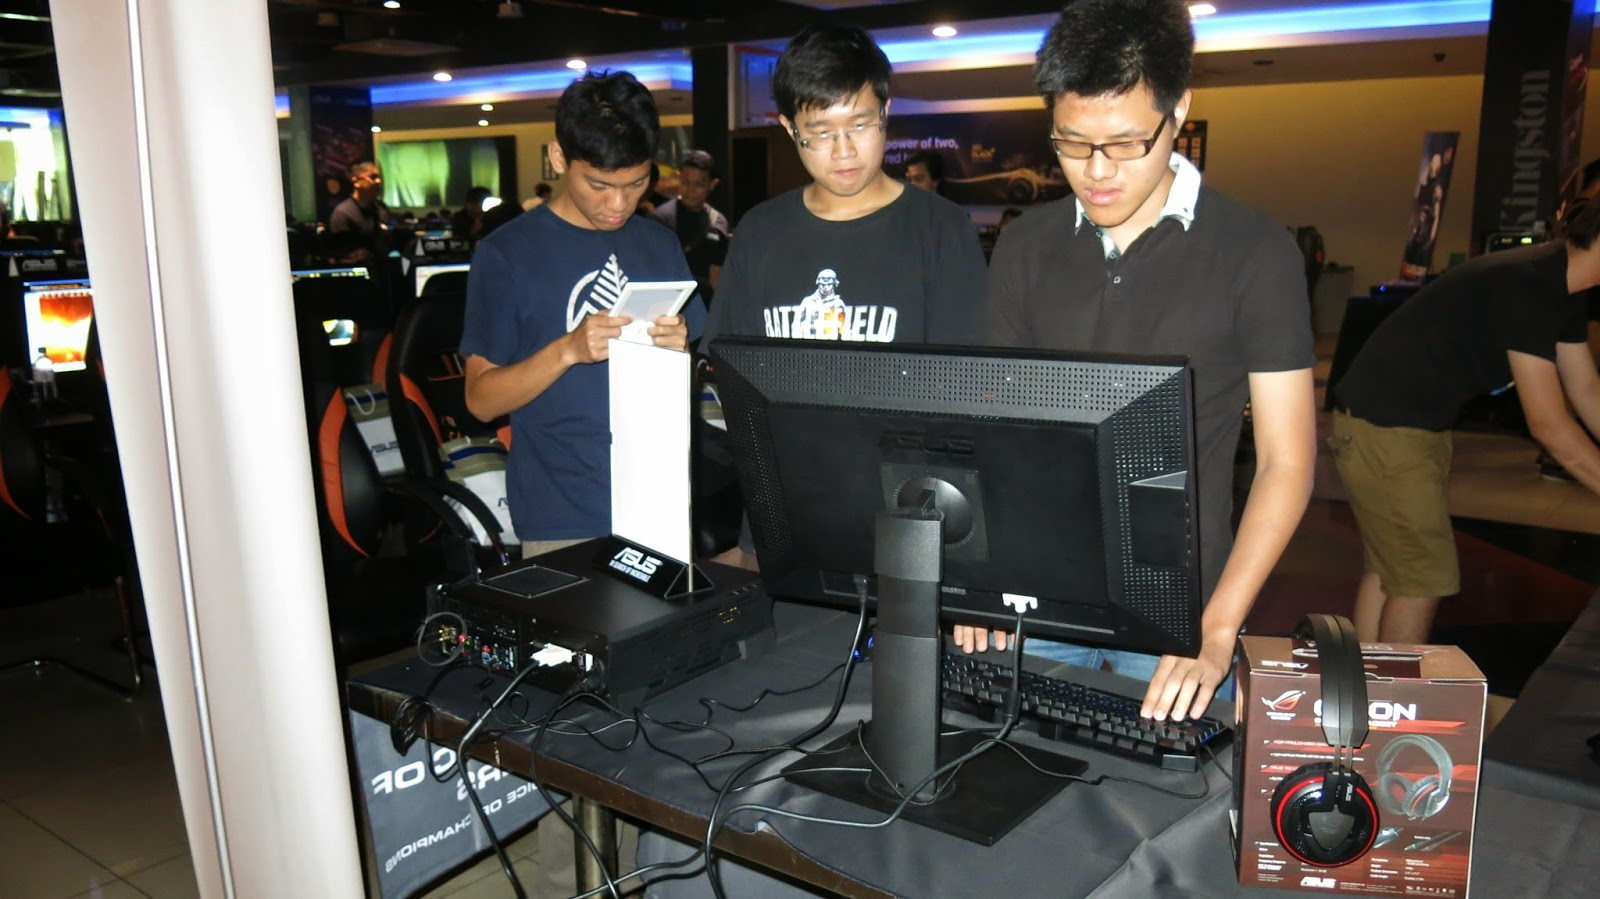 The Second ASUS & NVIDIA Gamers' Gathering Demonstrates Cutting-Edge Technology Designed for Both Gamers and Tech Enthusiasts 20